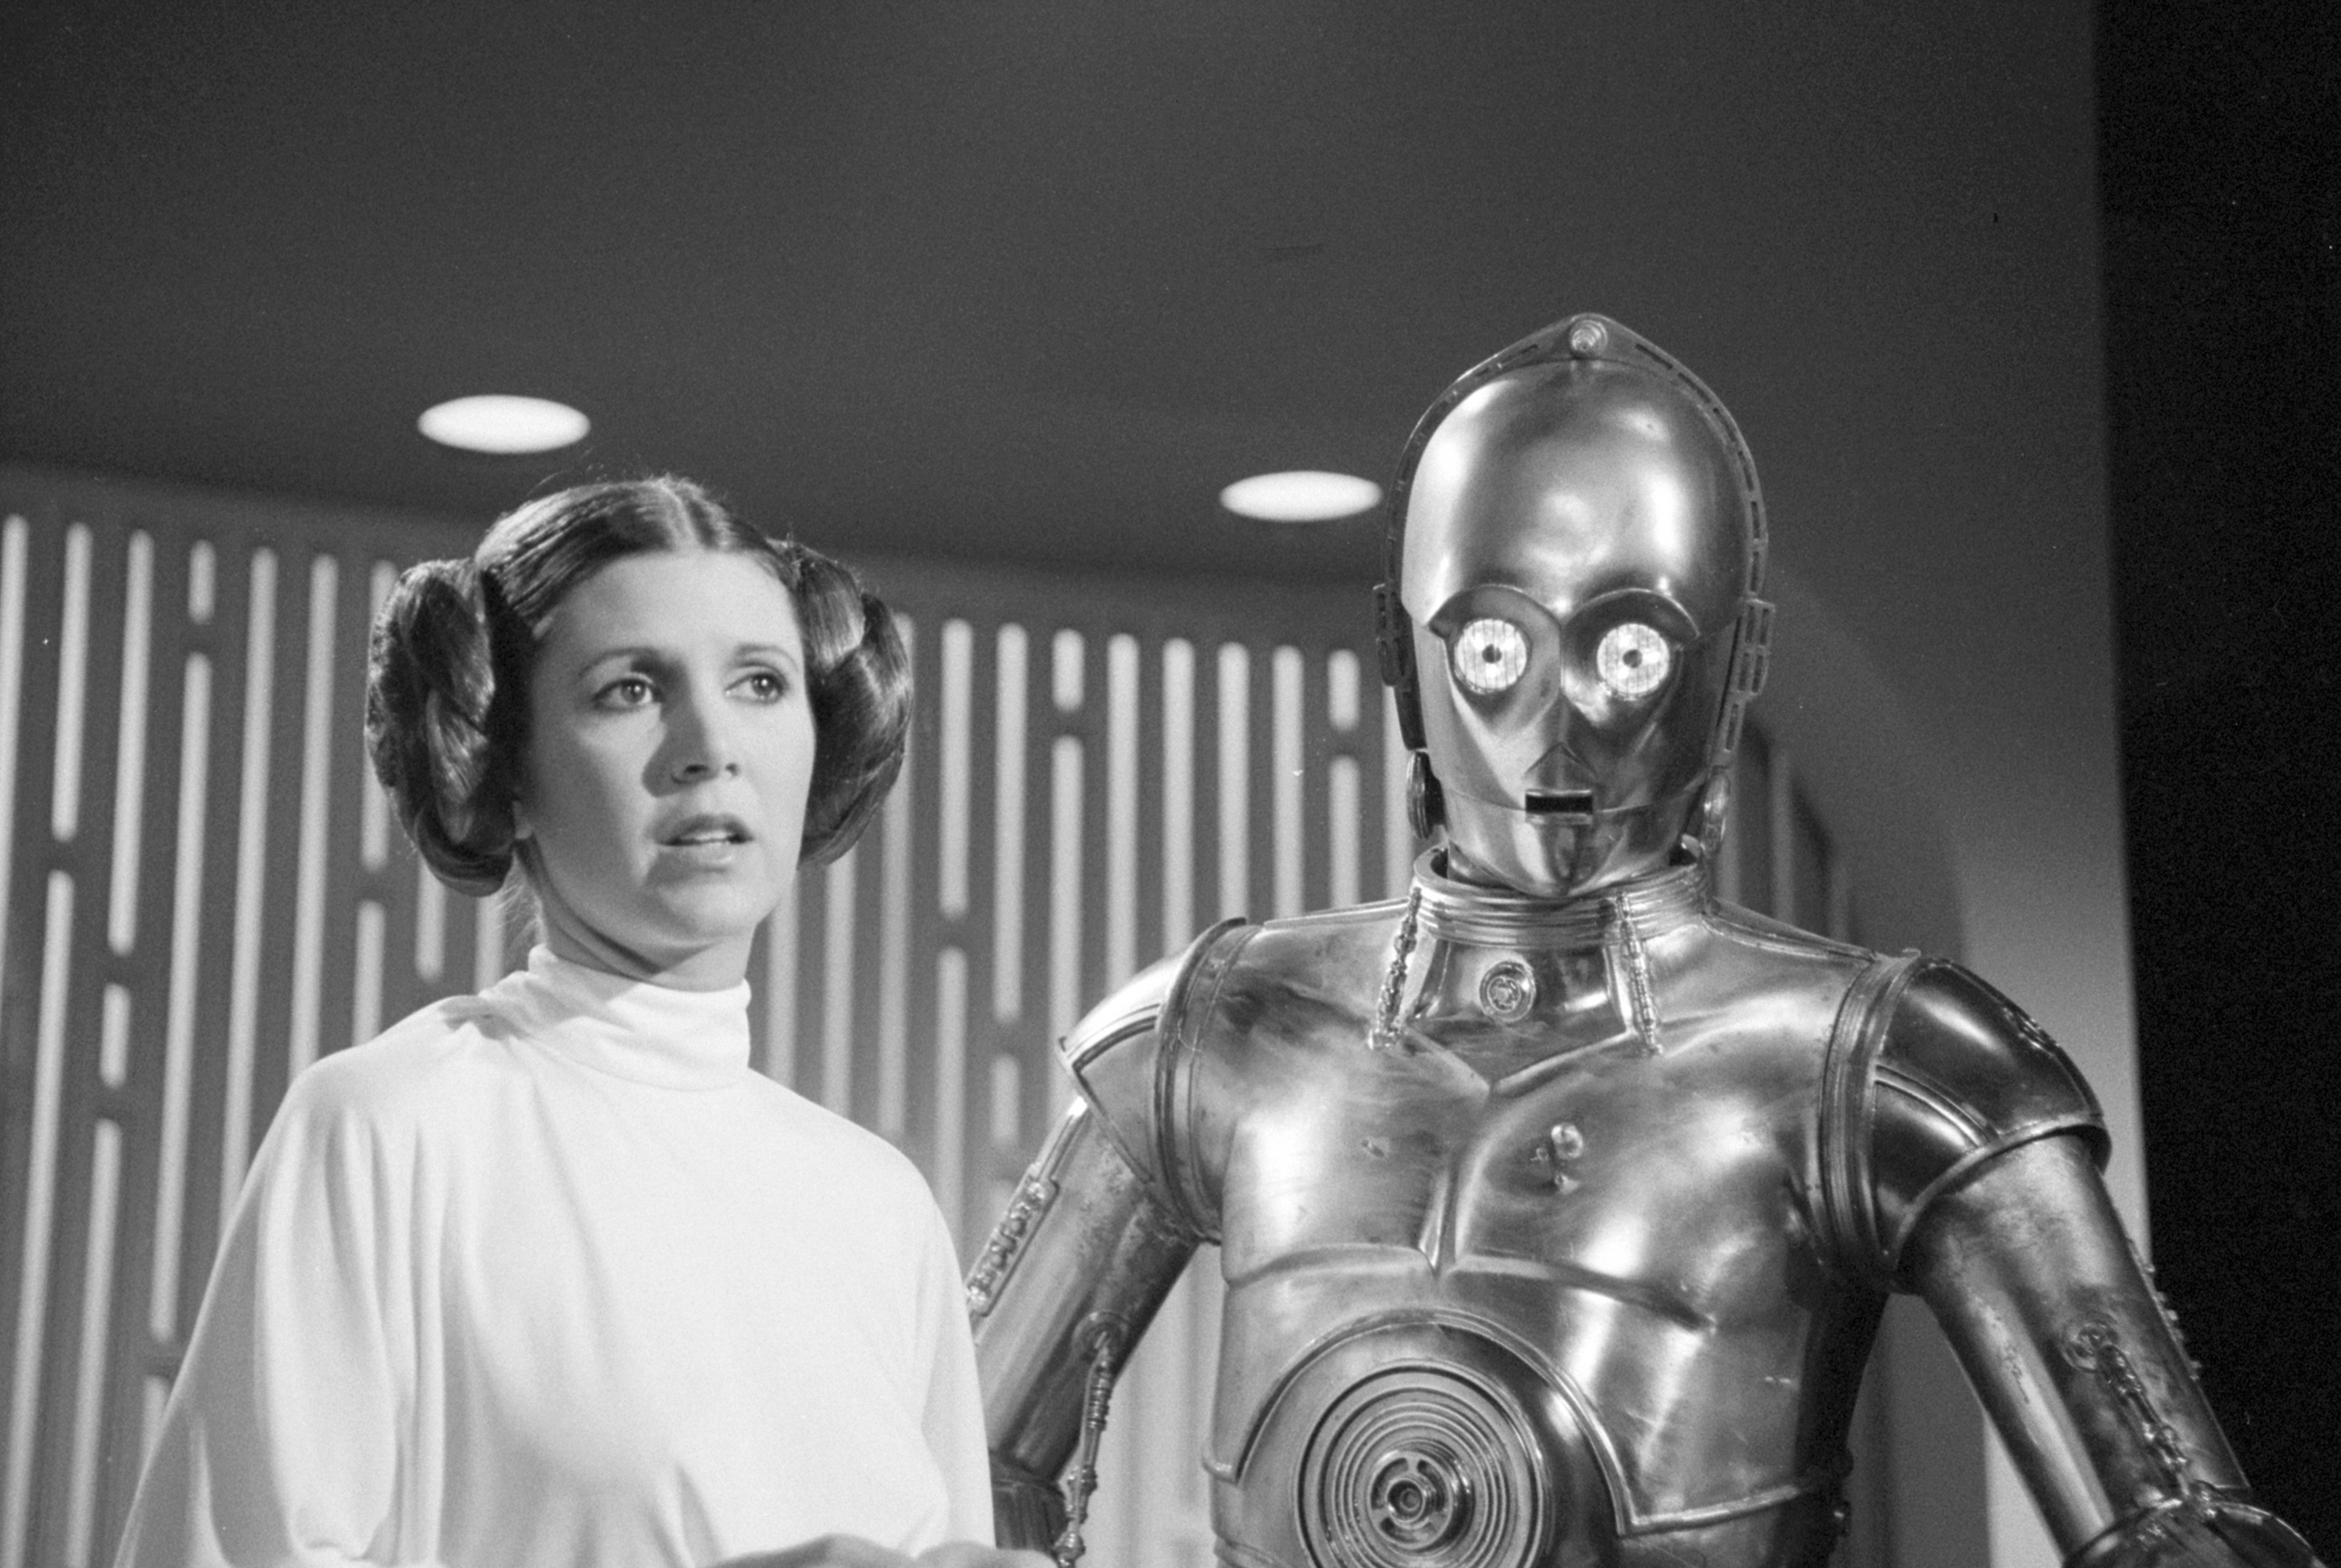 Carrie Fisher as Princes Leia and Anthony Daniels as C3PO  on Aug. 23, 1978.